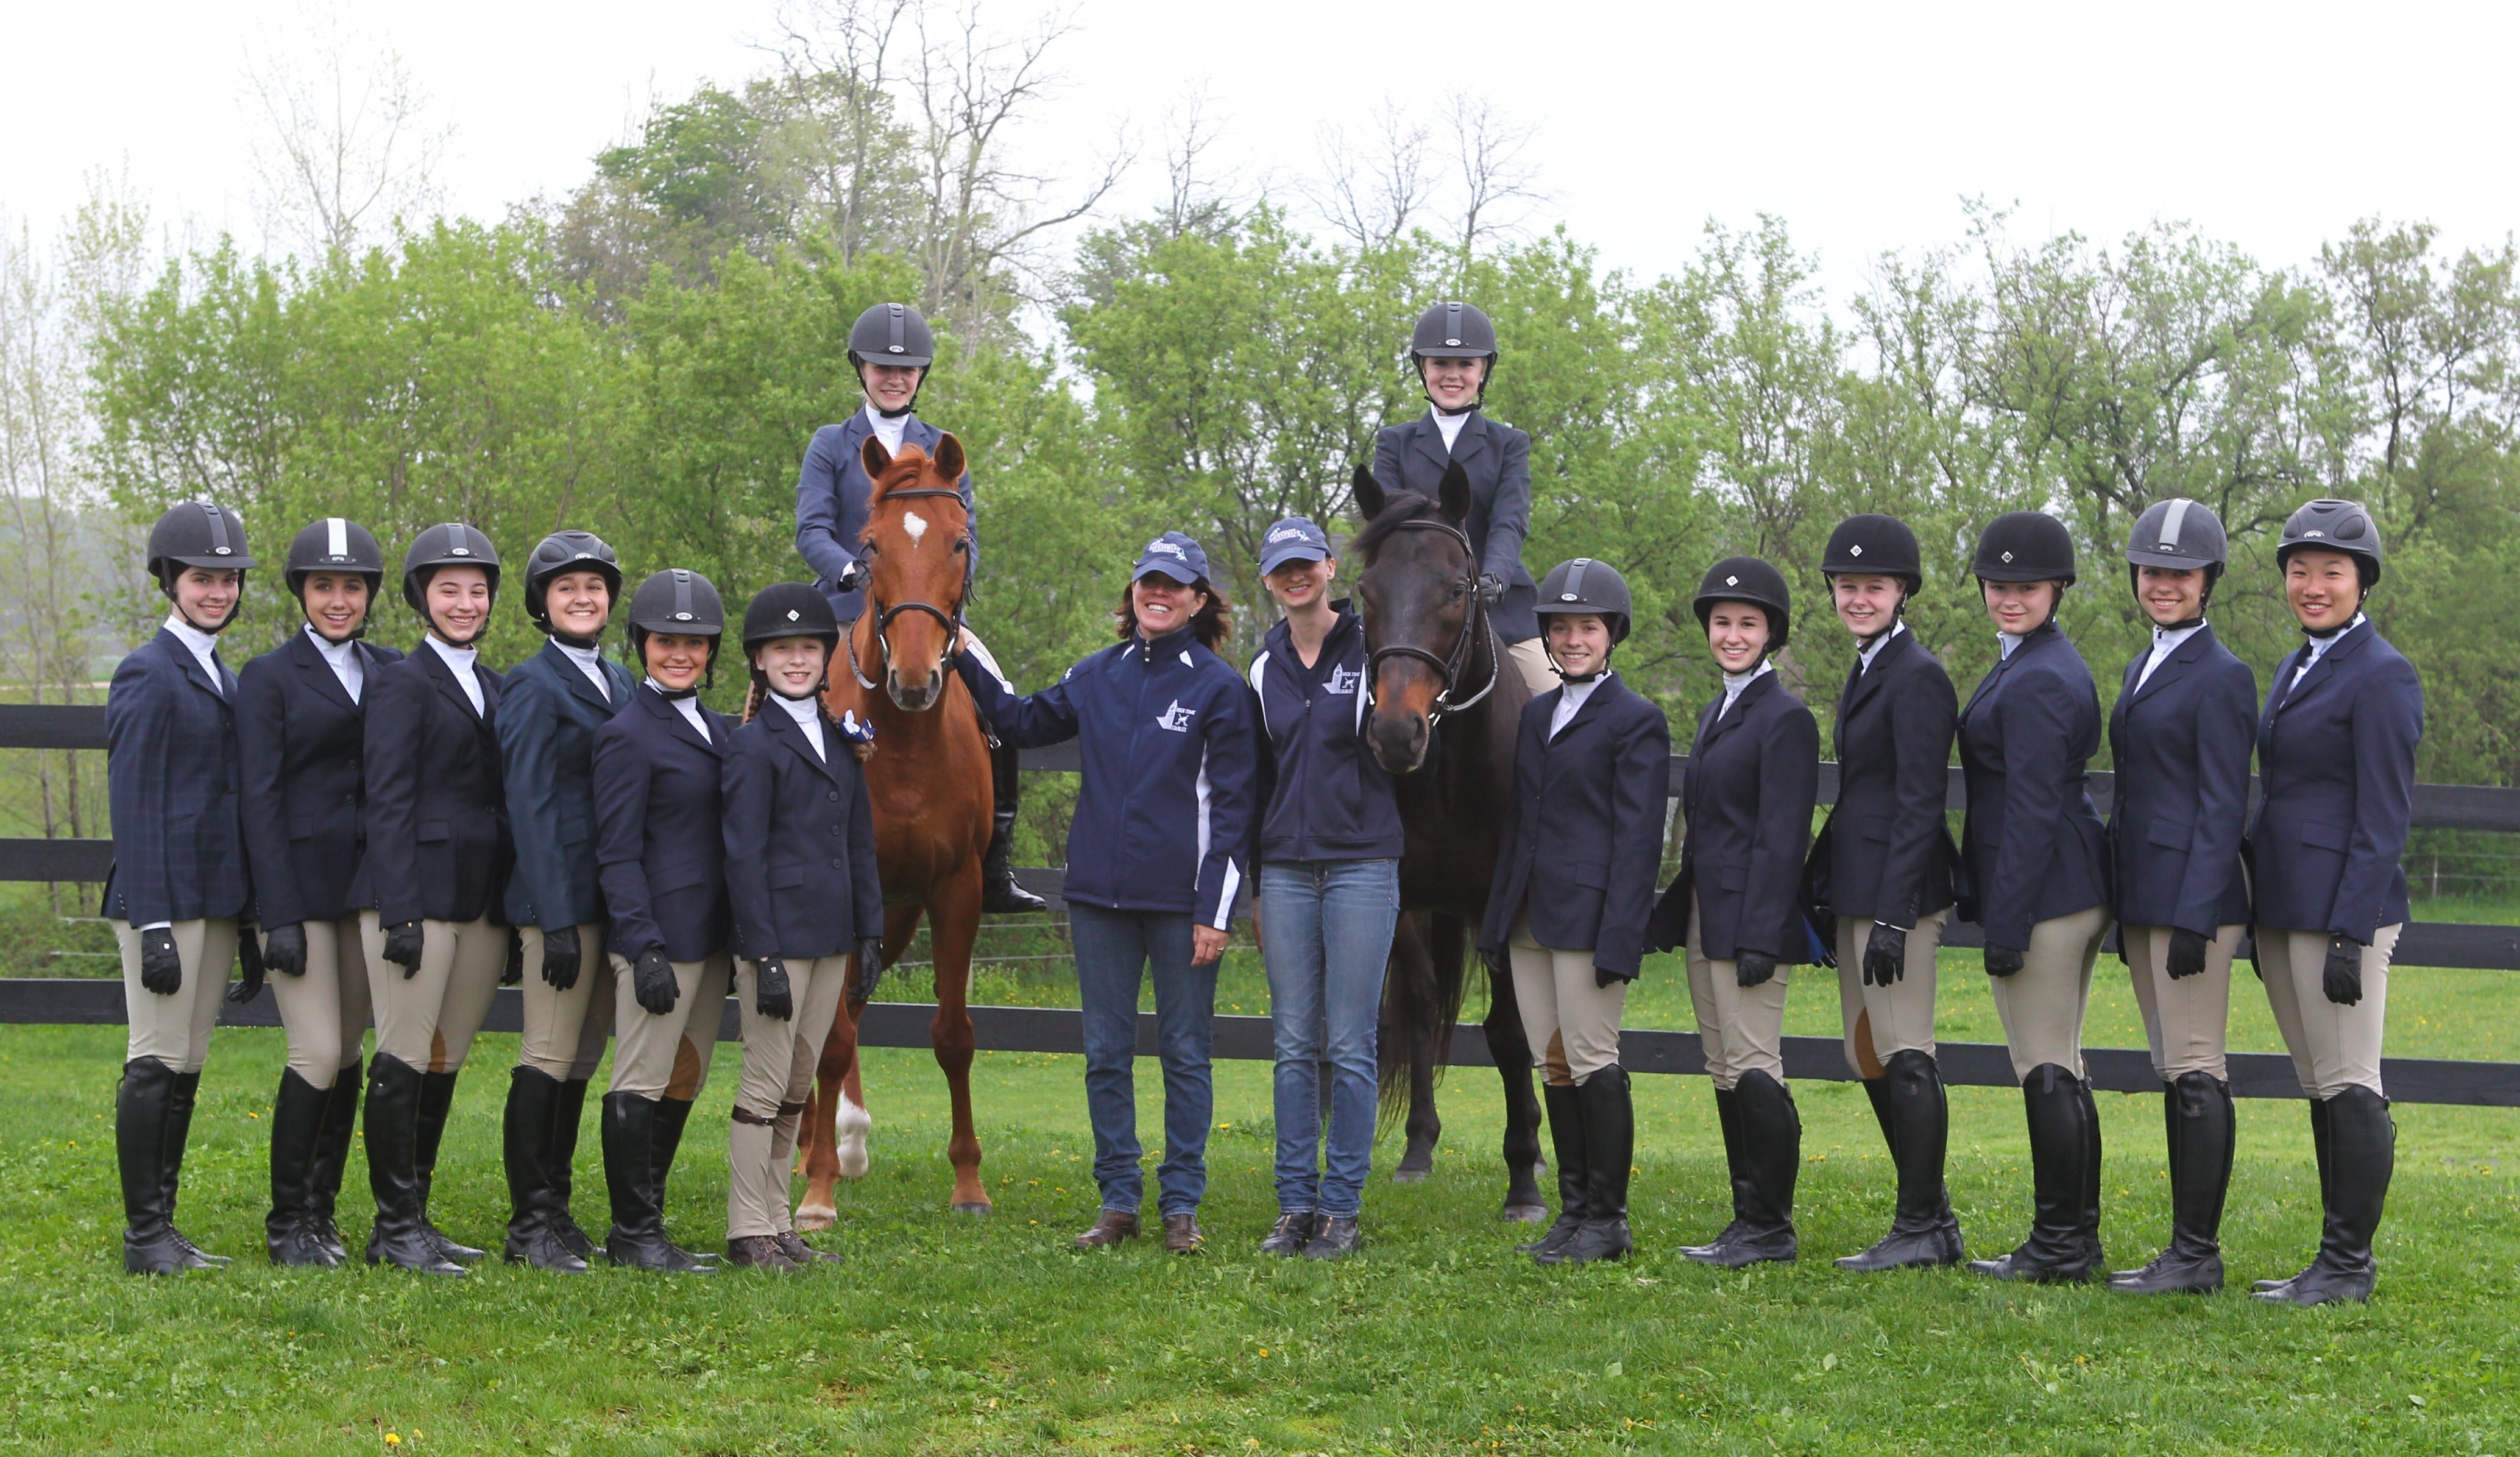 Members of the High Time Stables team, standing at Sugar Brook Farm in East Aurora, are, from left: Fiona Nocera, Miranda Alessi, Rachel Kempf, Aubrie Gluszak, Jamie Thuman, Sophia Azurin, Sarah Klocke, coach Leigh Fischer, assistant coach Barb Koziol, Lissy Naber, Karli Morrill, Theresa Cometto, Emily Kerl, Rachael Surowiec, Katelyn Cefali and Megan He.    , at the farm in East Aurora Wednesday, May 14, 2014.  (Mark Mulville/Buffalo News)